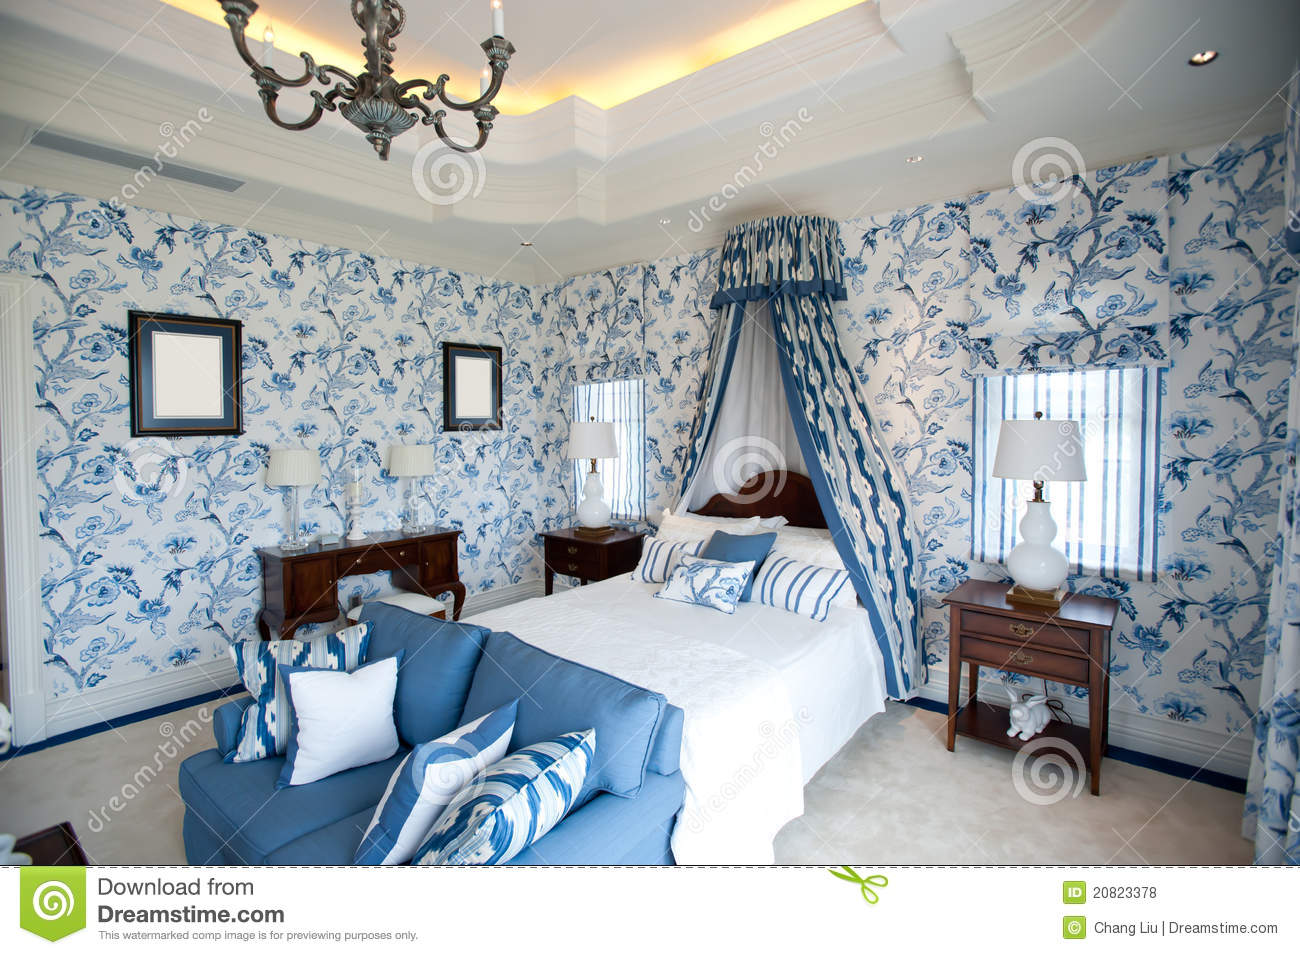 Bedroom With Blue Flower Wallpaper Royalty Free Stock